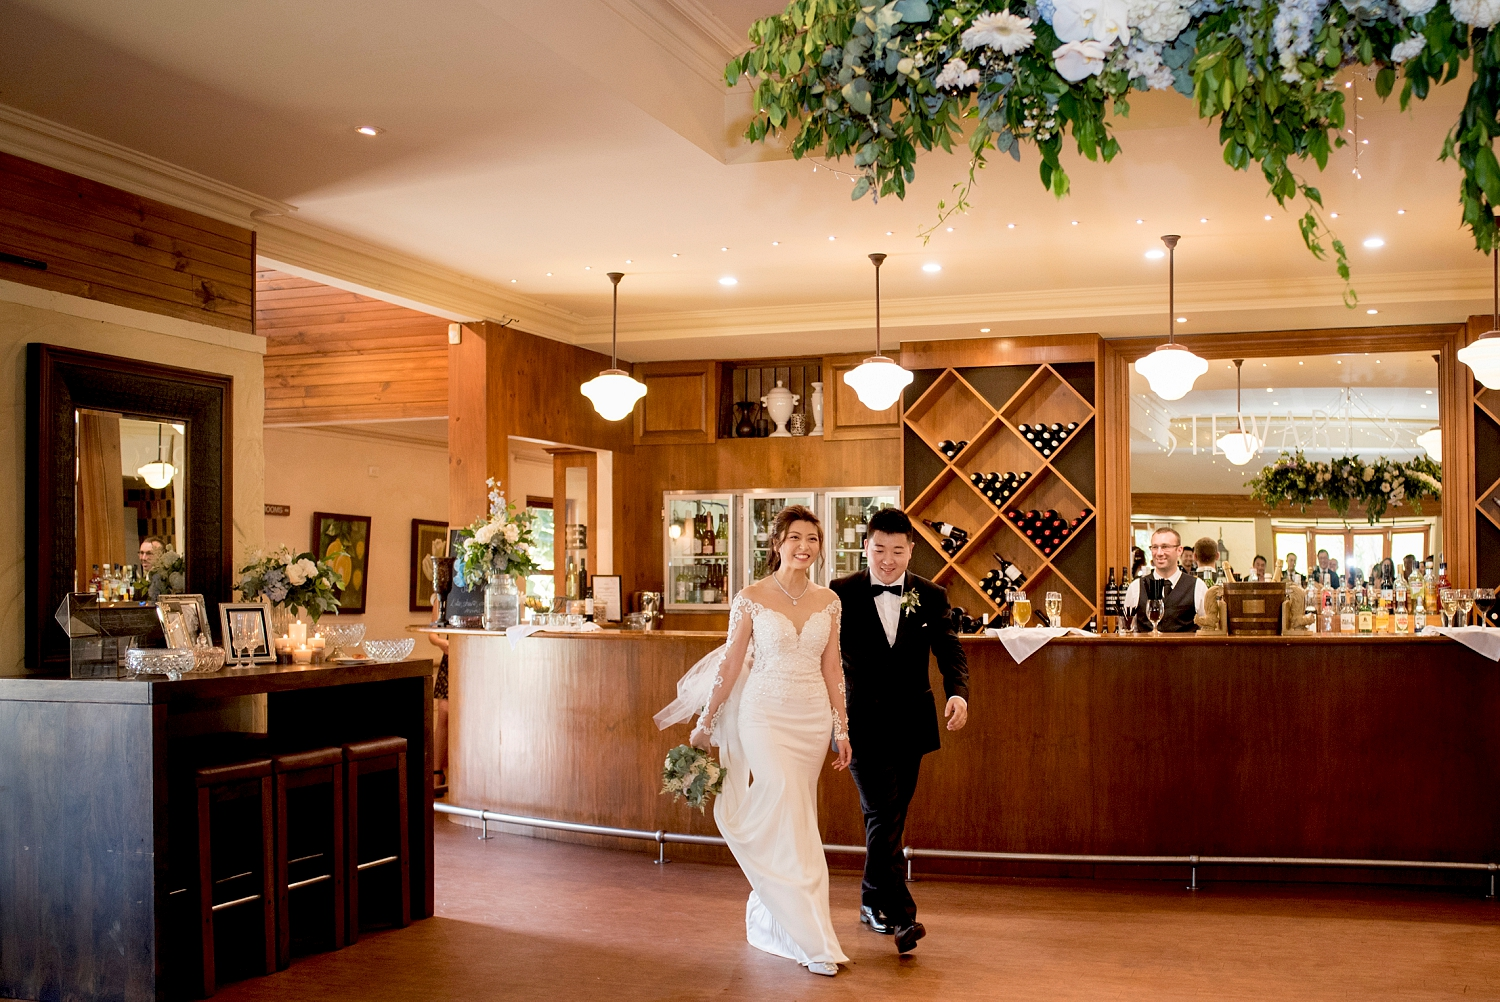 26_stewarts restaurant wedding swan valley.jpg